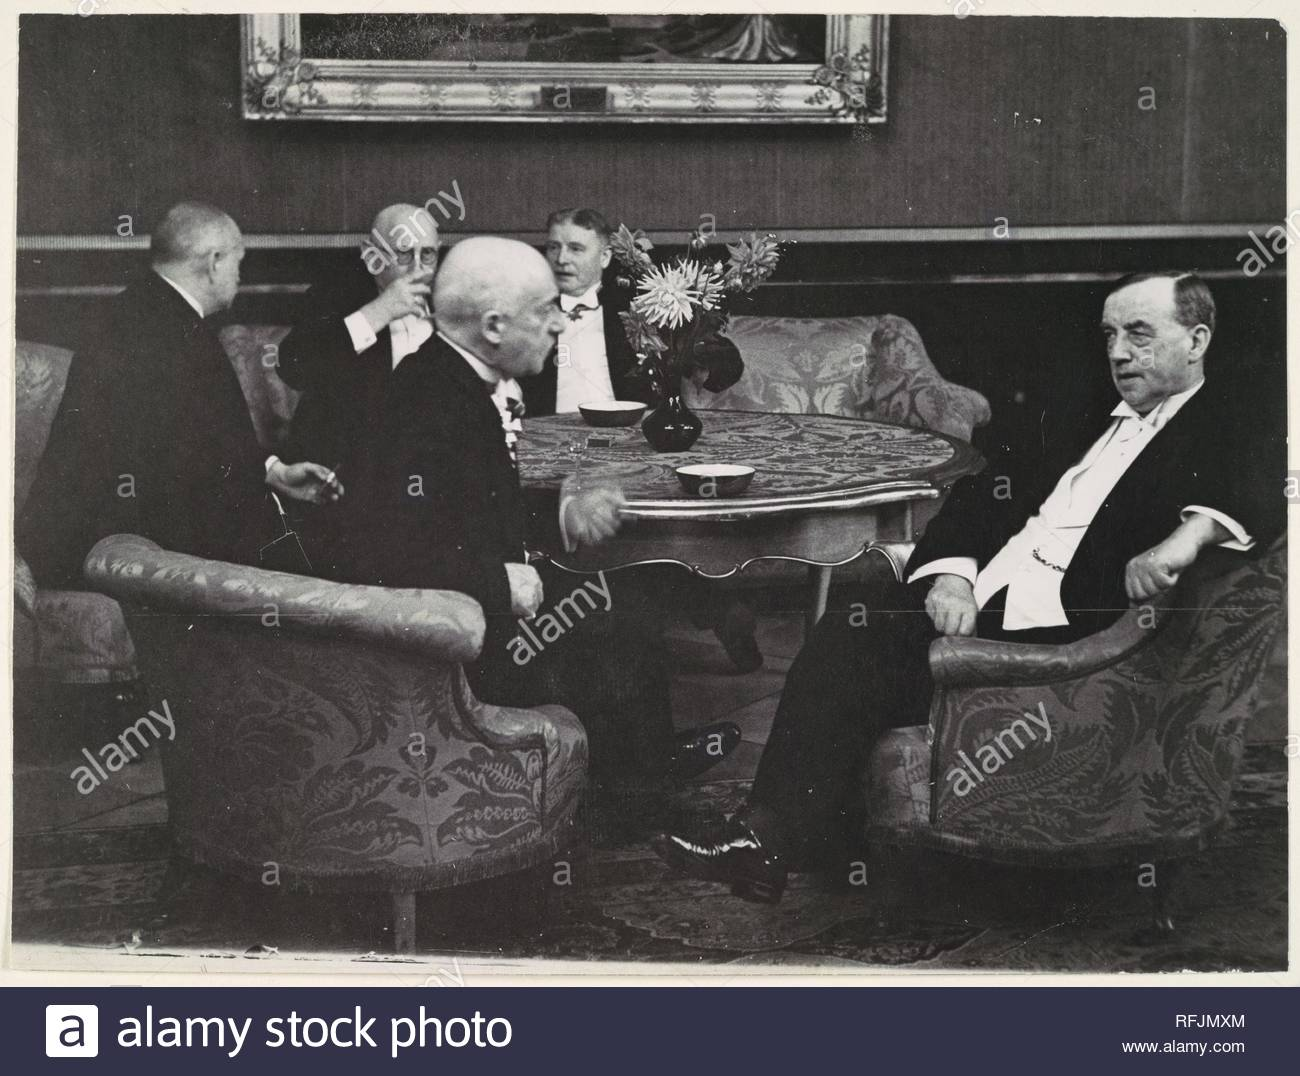 [Five Gentlemen Conversing around Table]. Artist: Erich Salomon (German, Berlin 1886-1944 Auschwitz, Poland). Dimensions: 17.4 x 23.2 cm. (6  7/8  x 9  1/8  in.). Date: 1920s-30s.  The phrase 'candid camera' was first coined in 1929 to describe Salomon's idiosyncratic technique of capturing the world's most powerful political and industrial leaders revealing themselves as ordinary human beings: talking, yawning, and joking. With his 35mm Ermanox camera concealed (sometimes in a hat or suitcase) and his unobtrusive appearance, Salomon was able to cut through the slick facade conveyed by officia - Stock Image